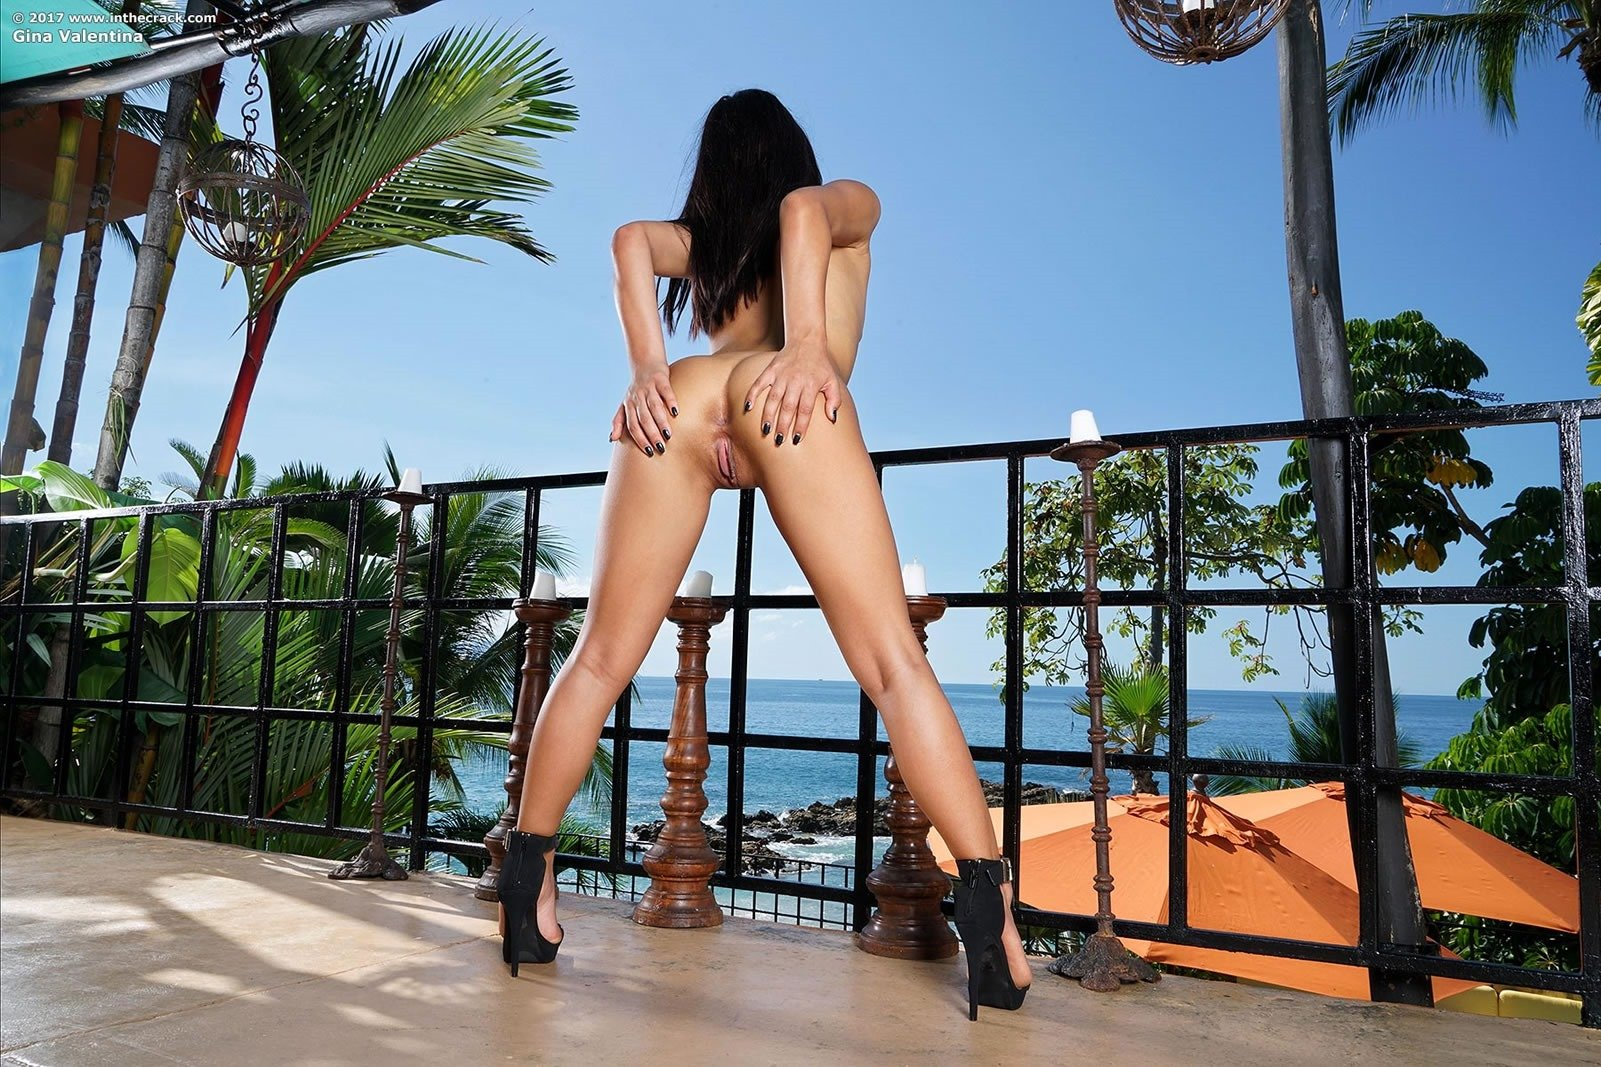 Gina Valentina Perfect View - Fine Hotties - Hot Naked ...